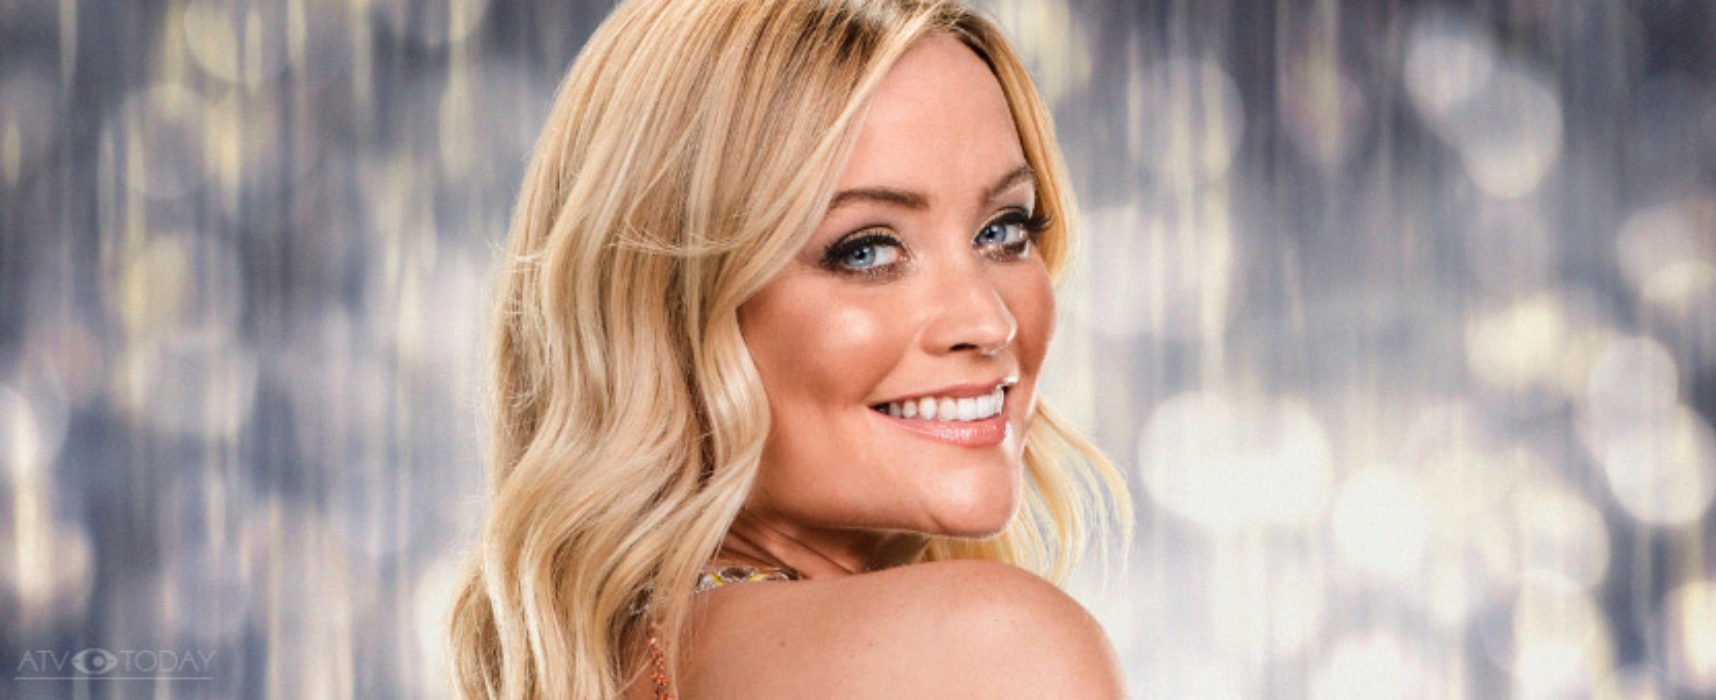 Love Island gets new host for sixth series